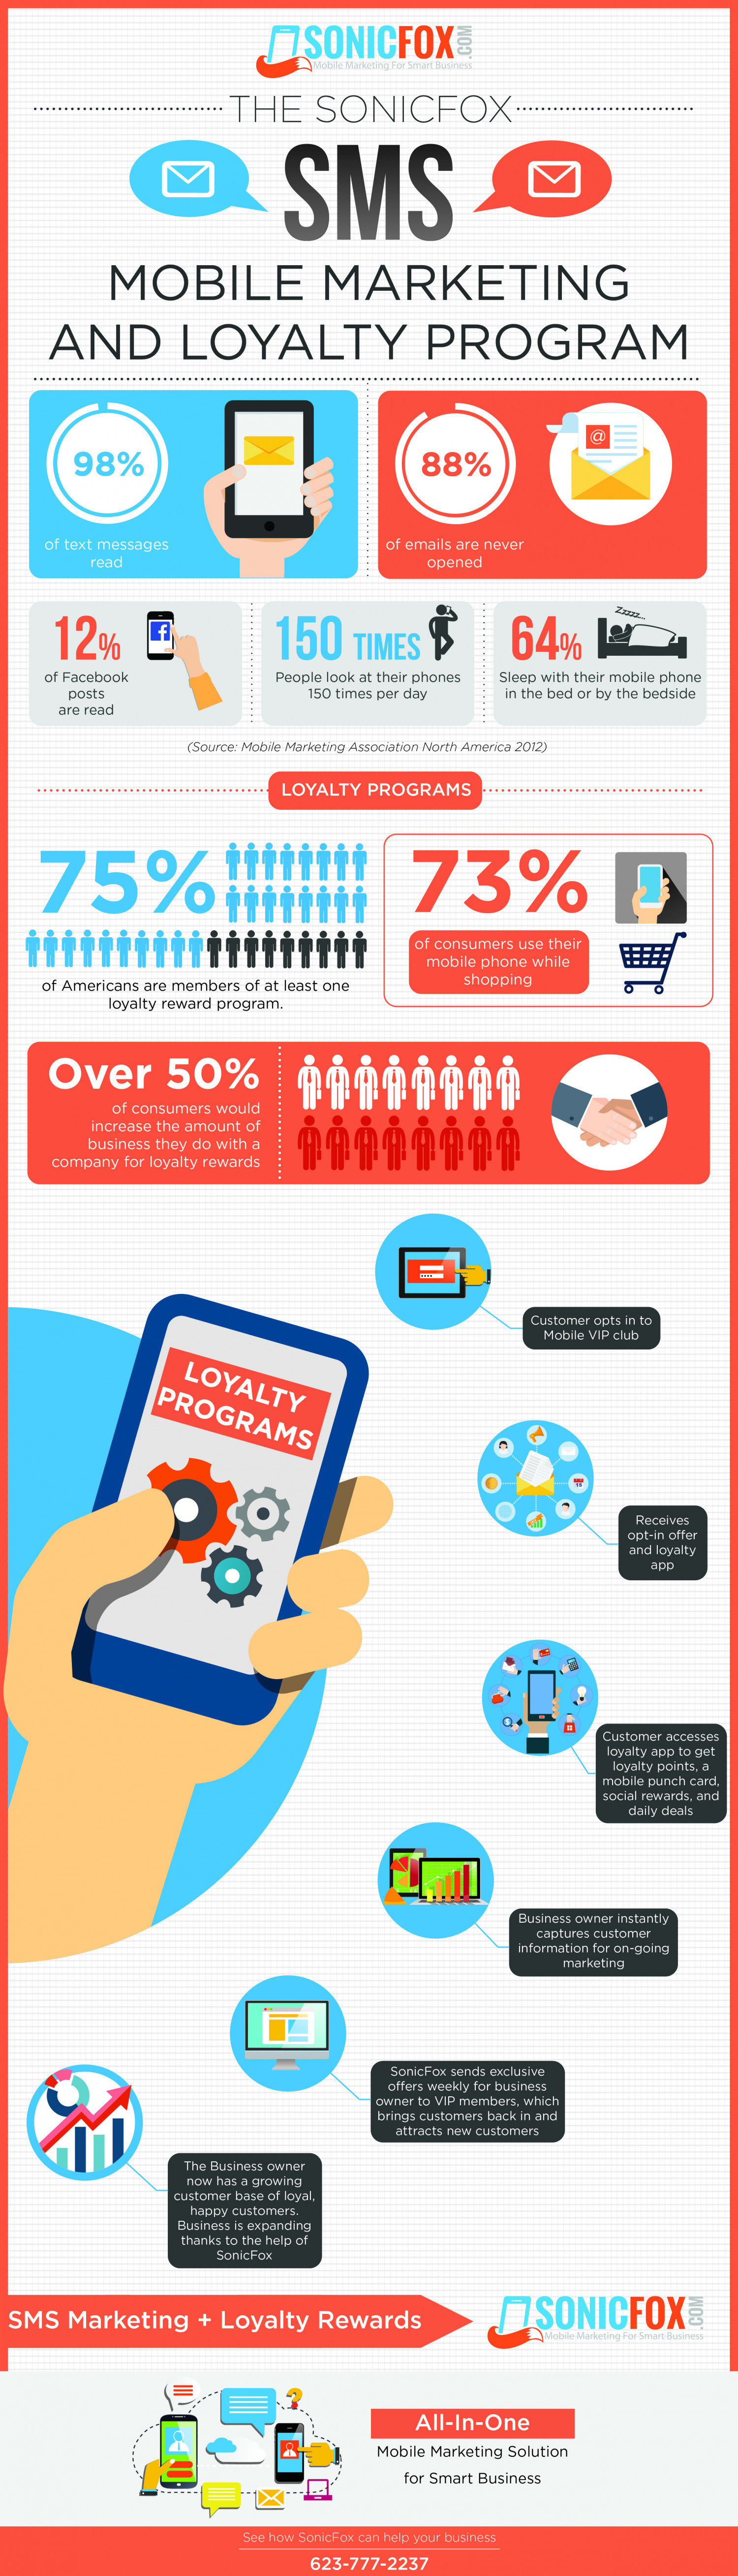 SonicFox SMS Mobile Marketing and Loyalty Program Infographic